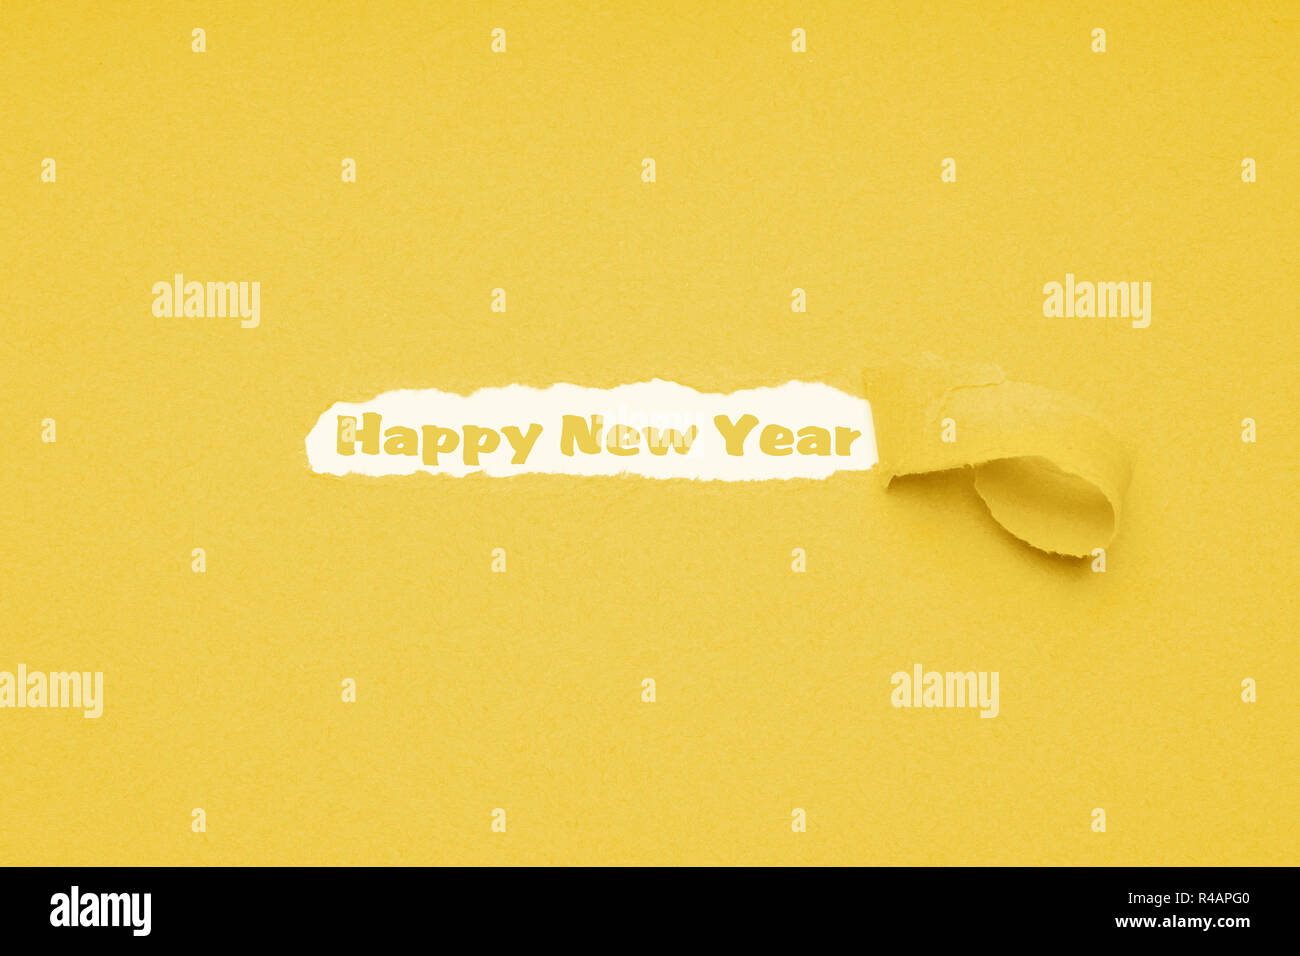 happy new year text seen through hole ripped in yellow paper background - Stock Image